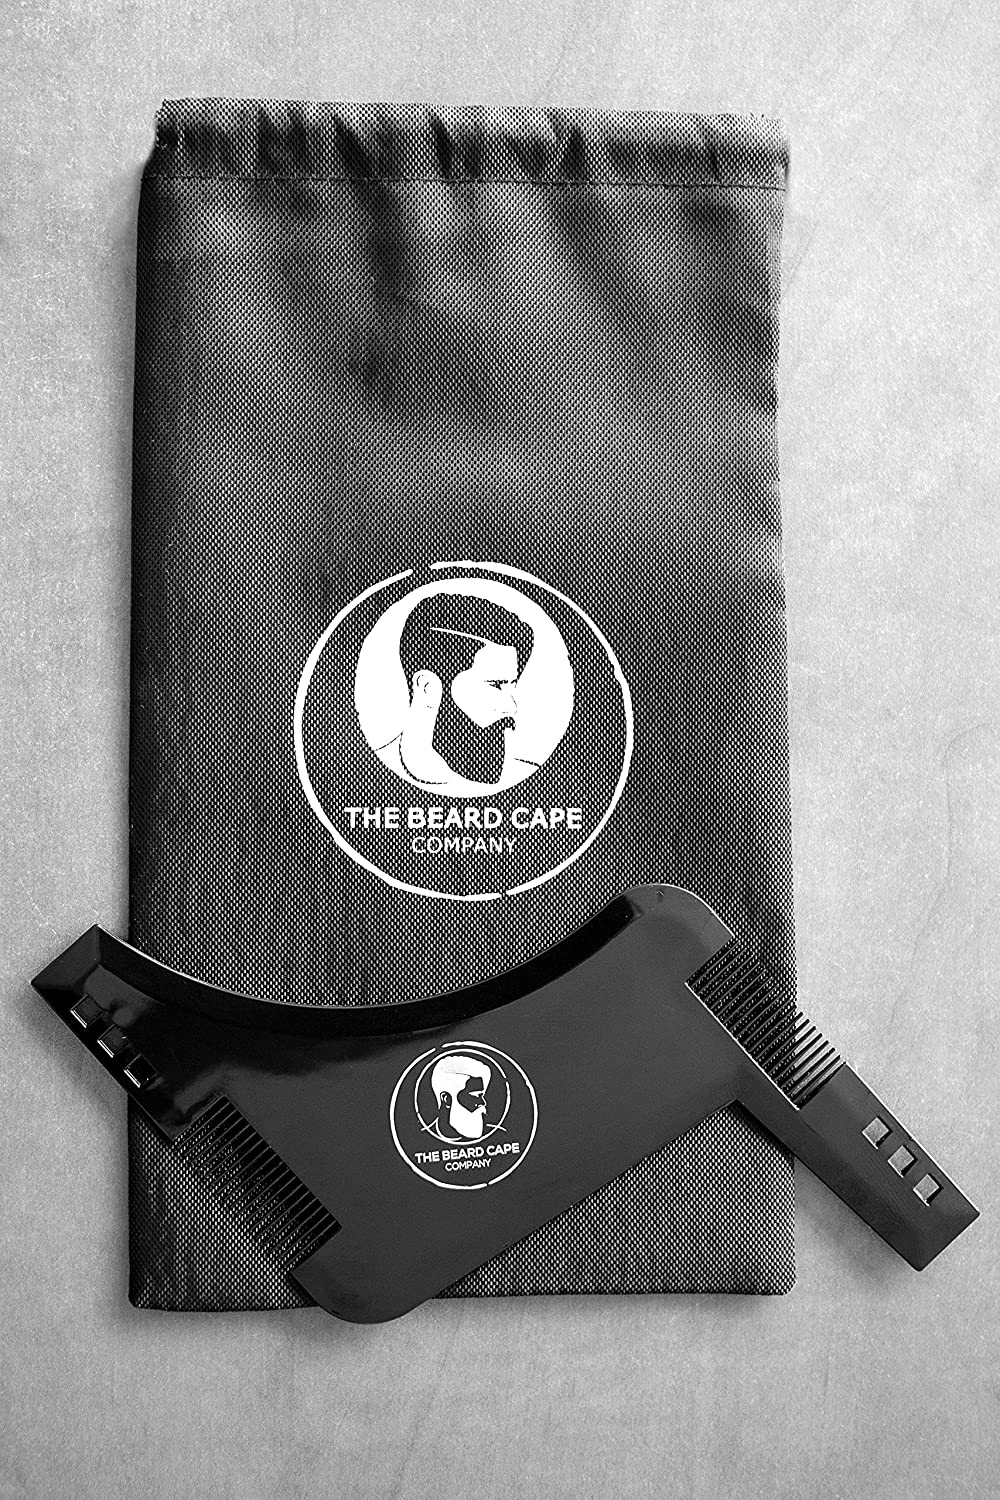 Best Beard Shaping and Styling Template Comb/Tool Accessory with FREE WASH BAG! The Beard Cape Company